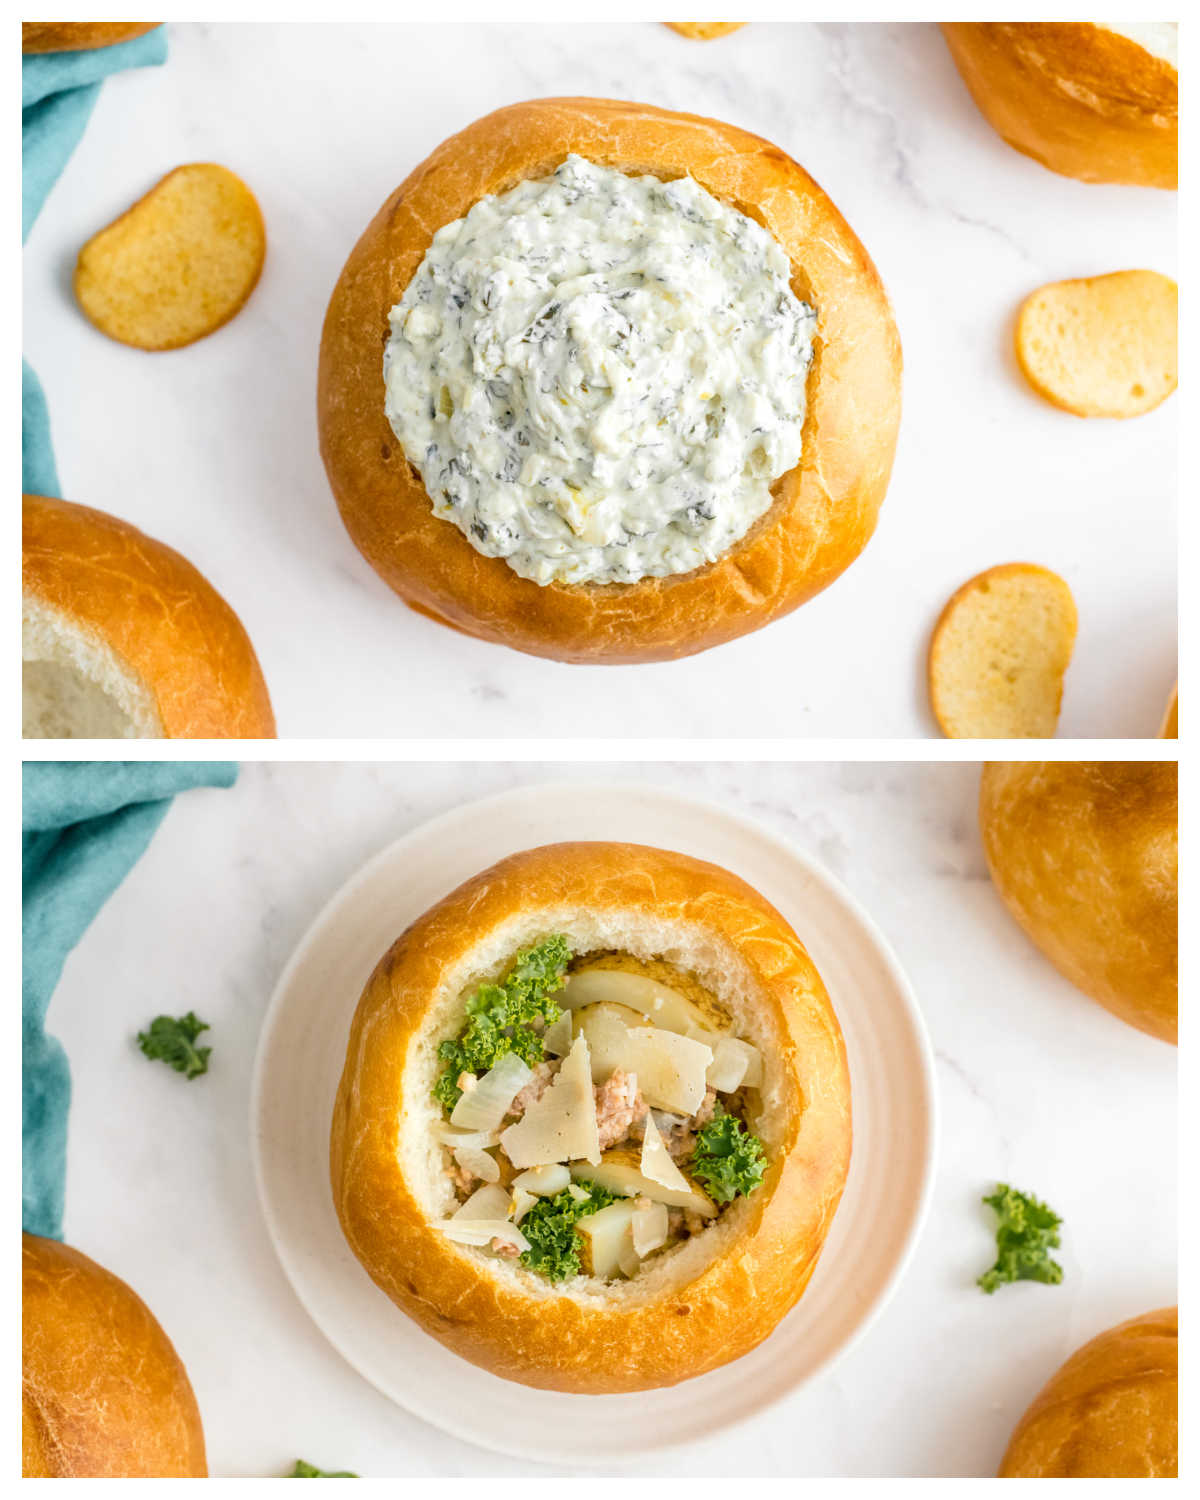 Two bread bowls filled with a spinach dip and soup.